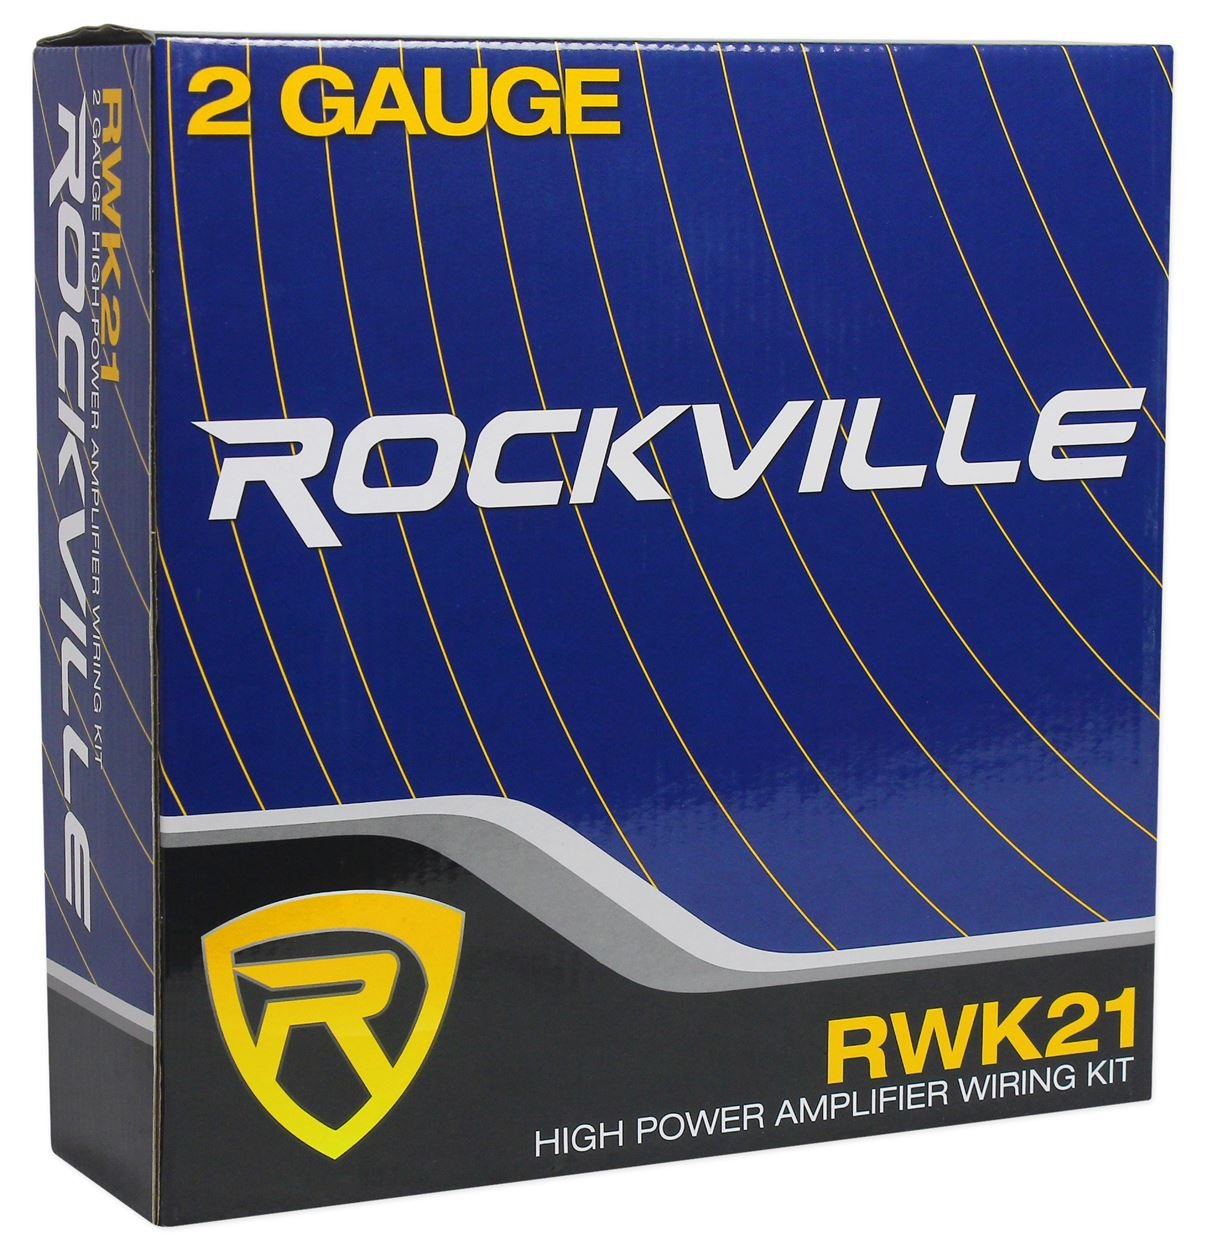 Rockville Rwk41 4 Gauge Complete Car Amp Wiring Installation Wire Amplifier Kit W Rcas Audiosavings